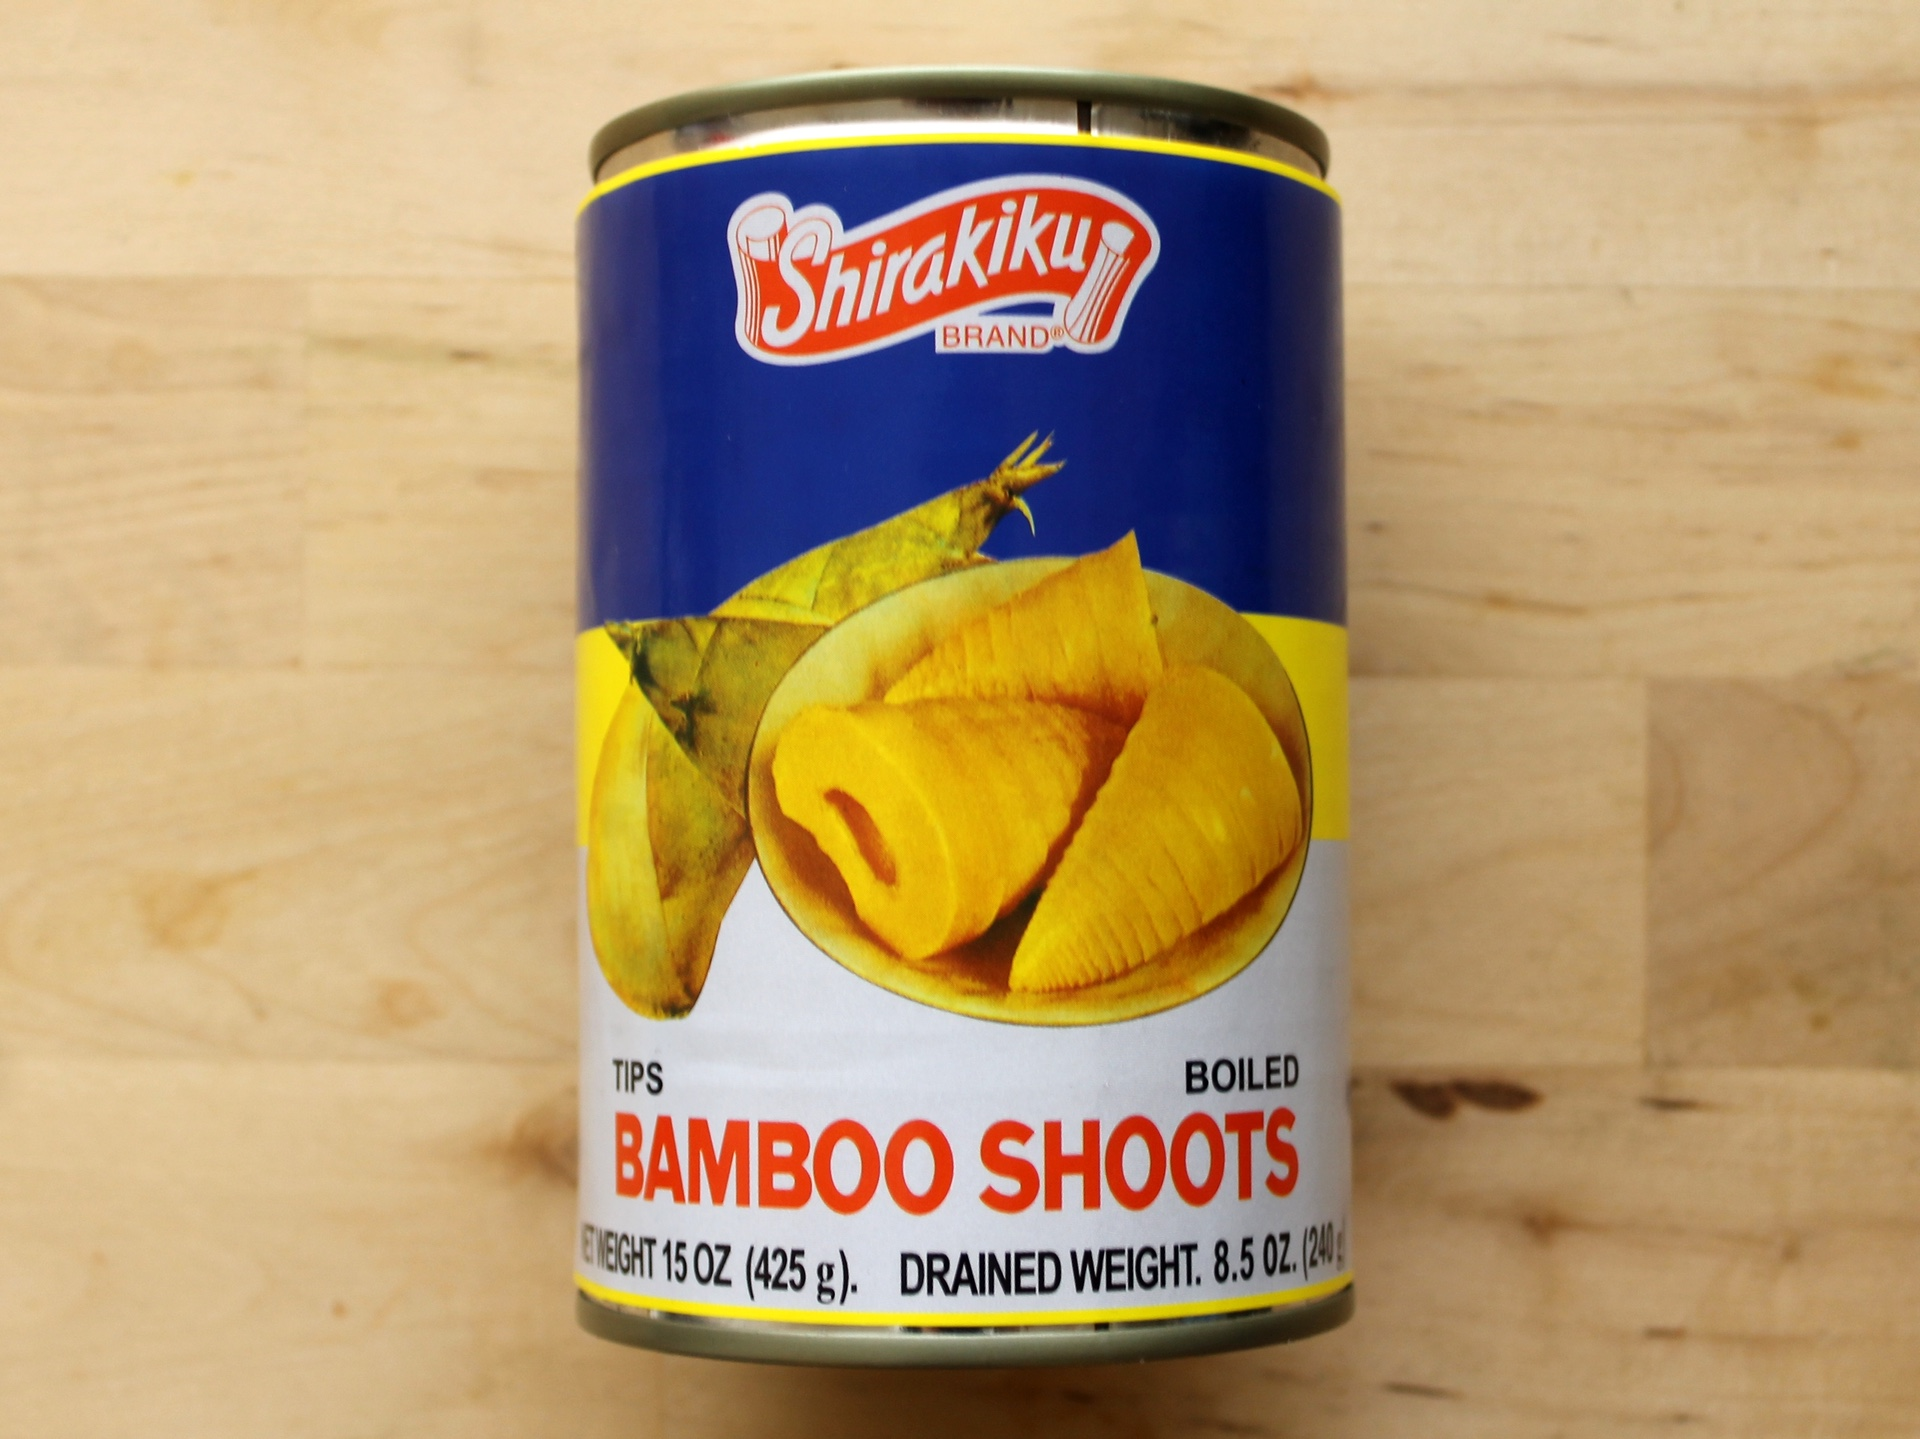 Bamboo shoots are most often found canned in water. You can buy tips and slice them yourself, or you can buy the bamboo pre-sliced.